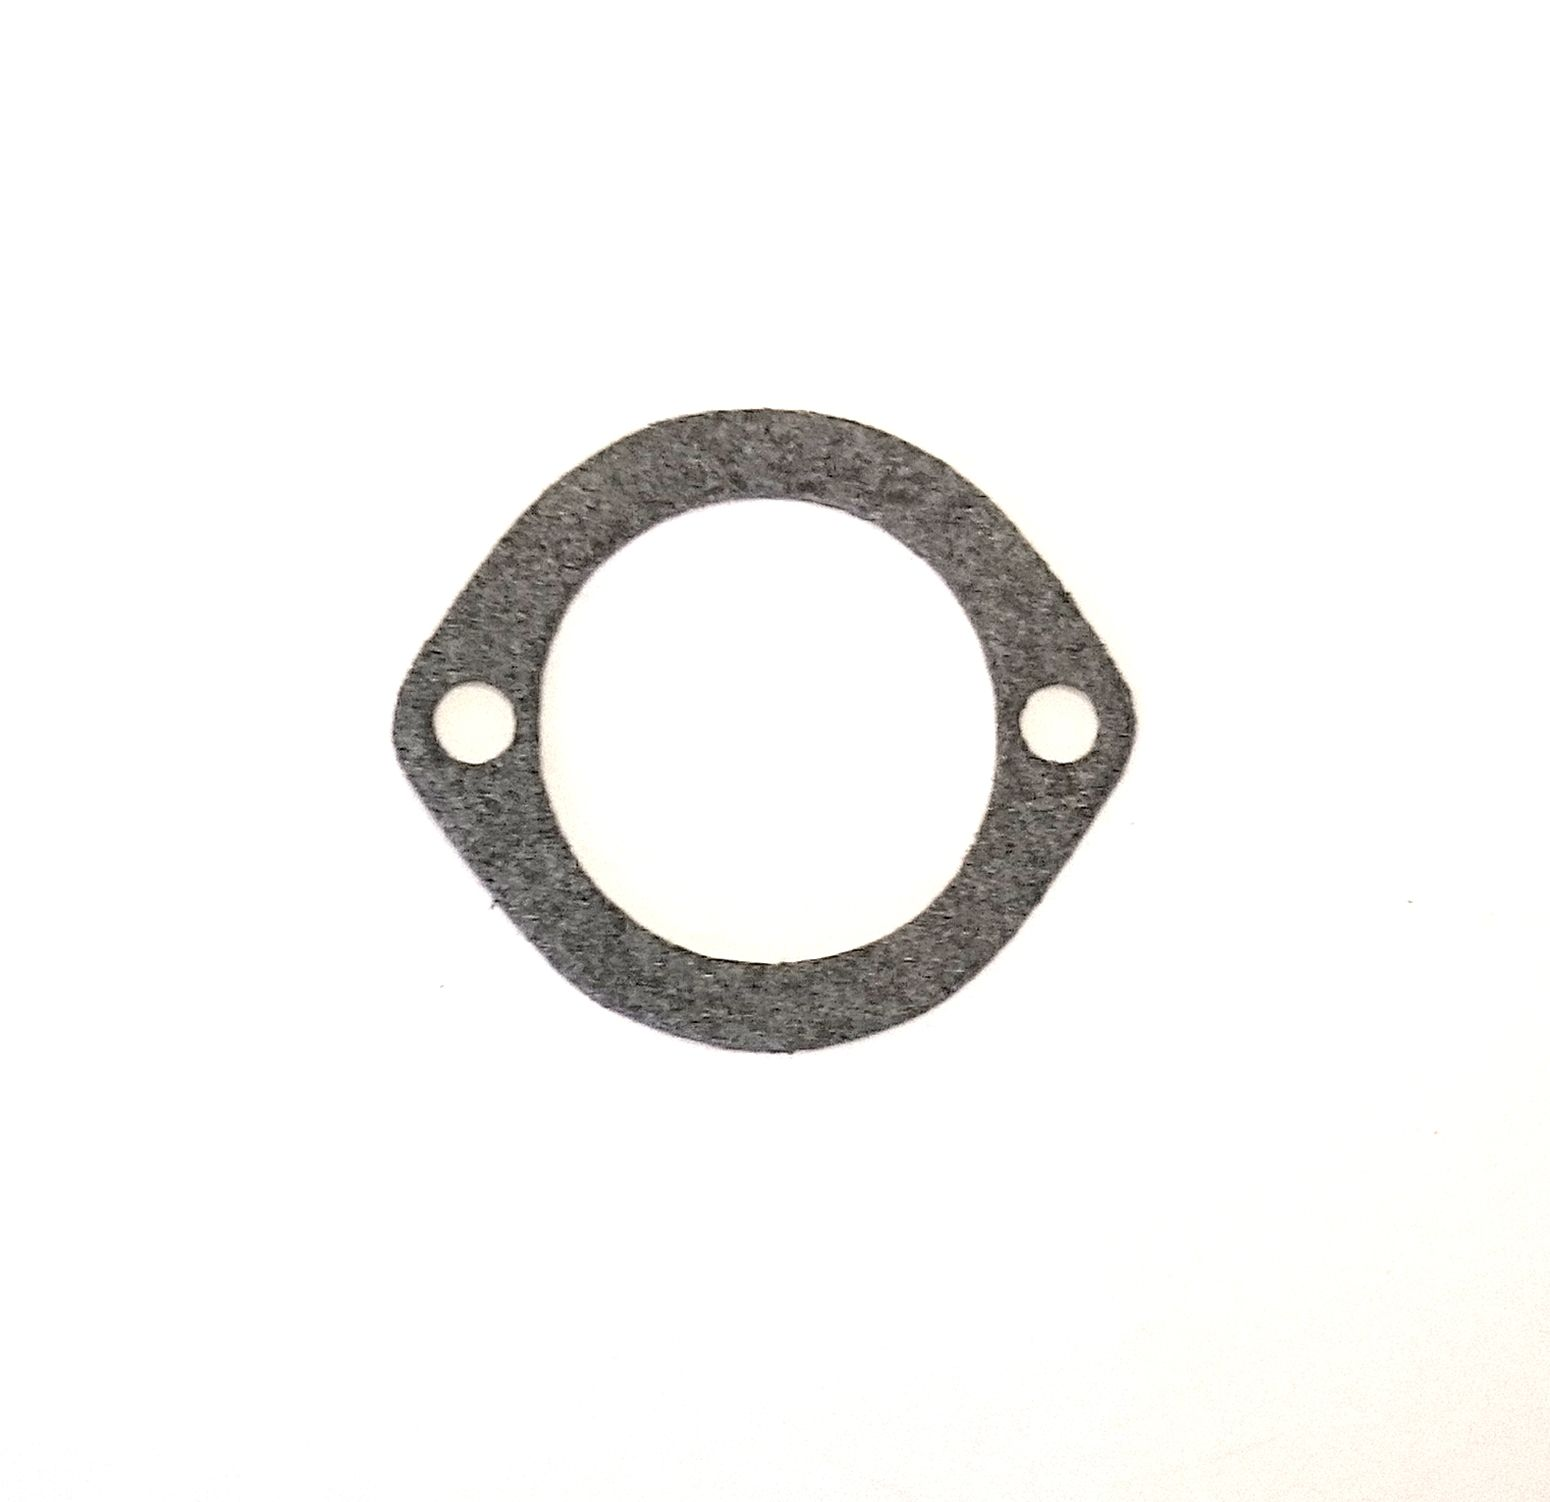 Air Filter Housing Gasket Atco Qualcast Webb Q01097 For